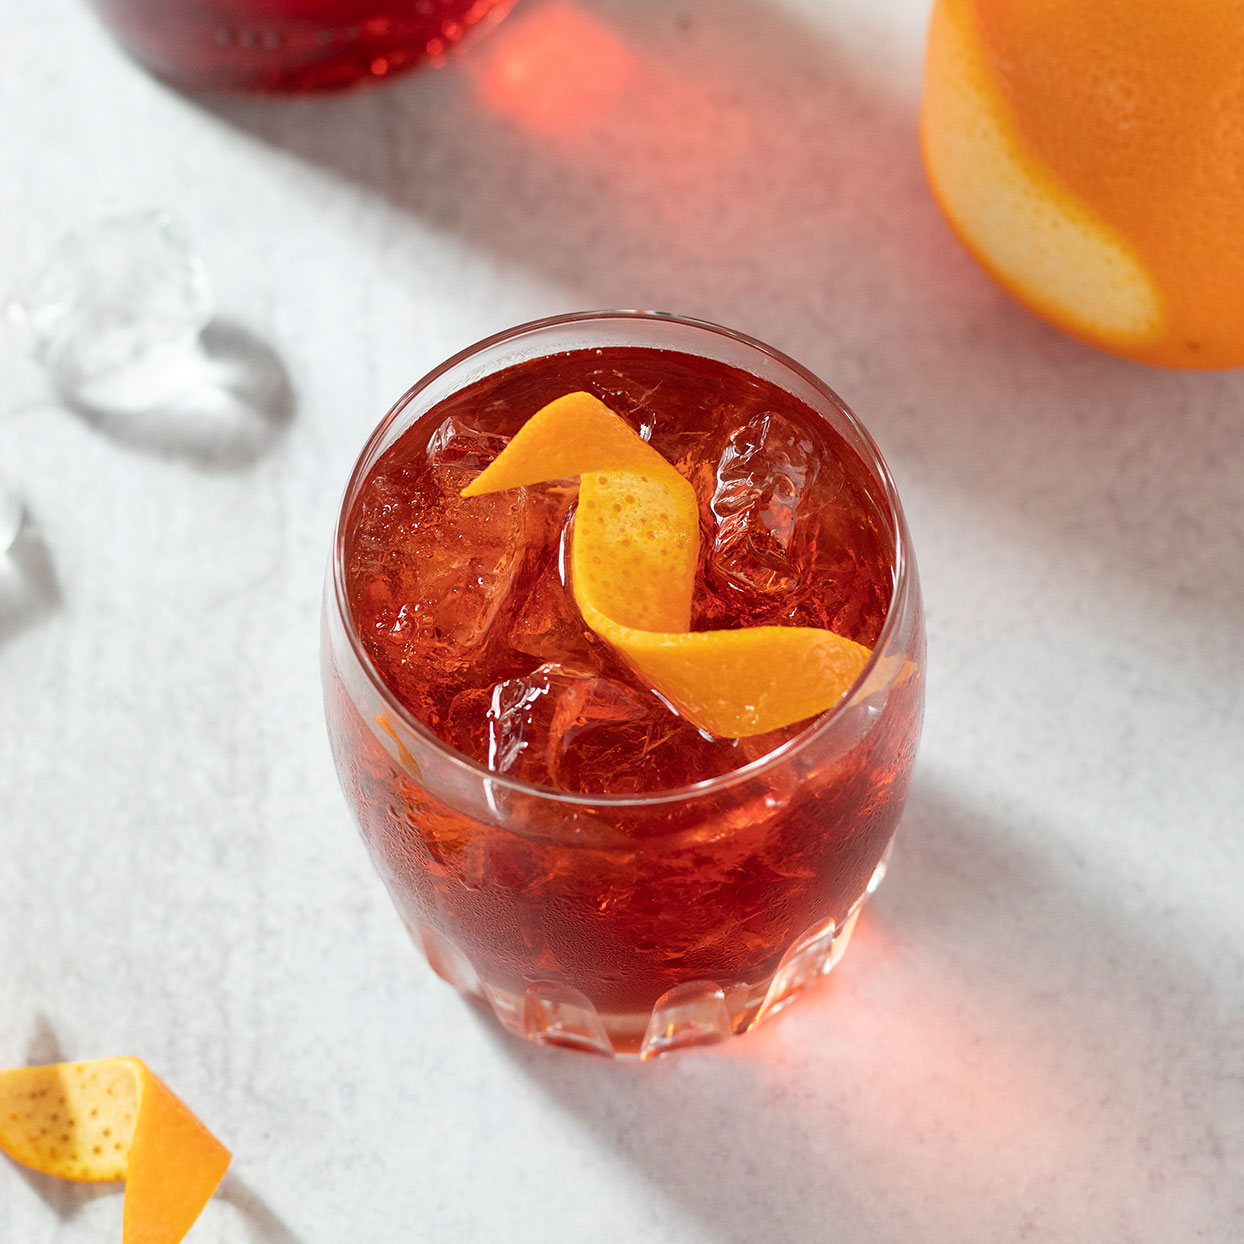 This brilliant red bittersweet cocktail was first created in Italy about a hundred years ago and remains a widely popular aperitif. Made with staple home bar bottles, the Negroni is a great cocktail to brighten up your happy hour. Don't have gin? Substitute bourbon or rye whiskey to make a classic boulevardier! Source: EatingWell.com, April 2020